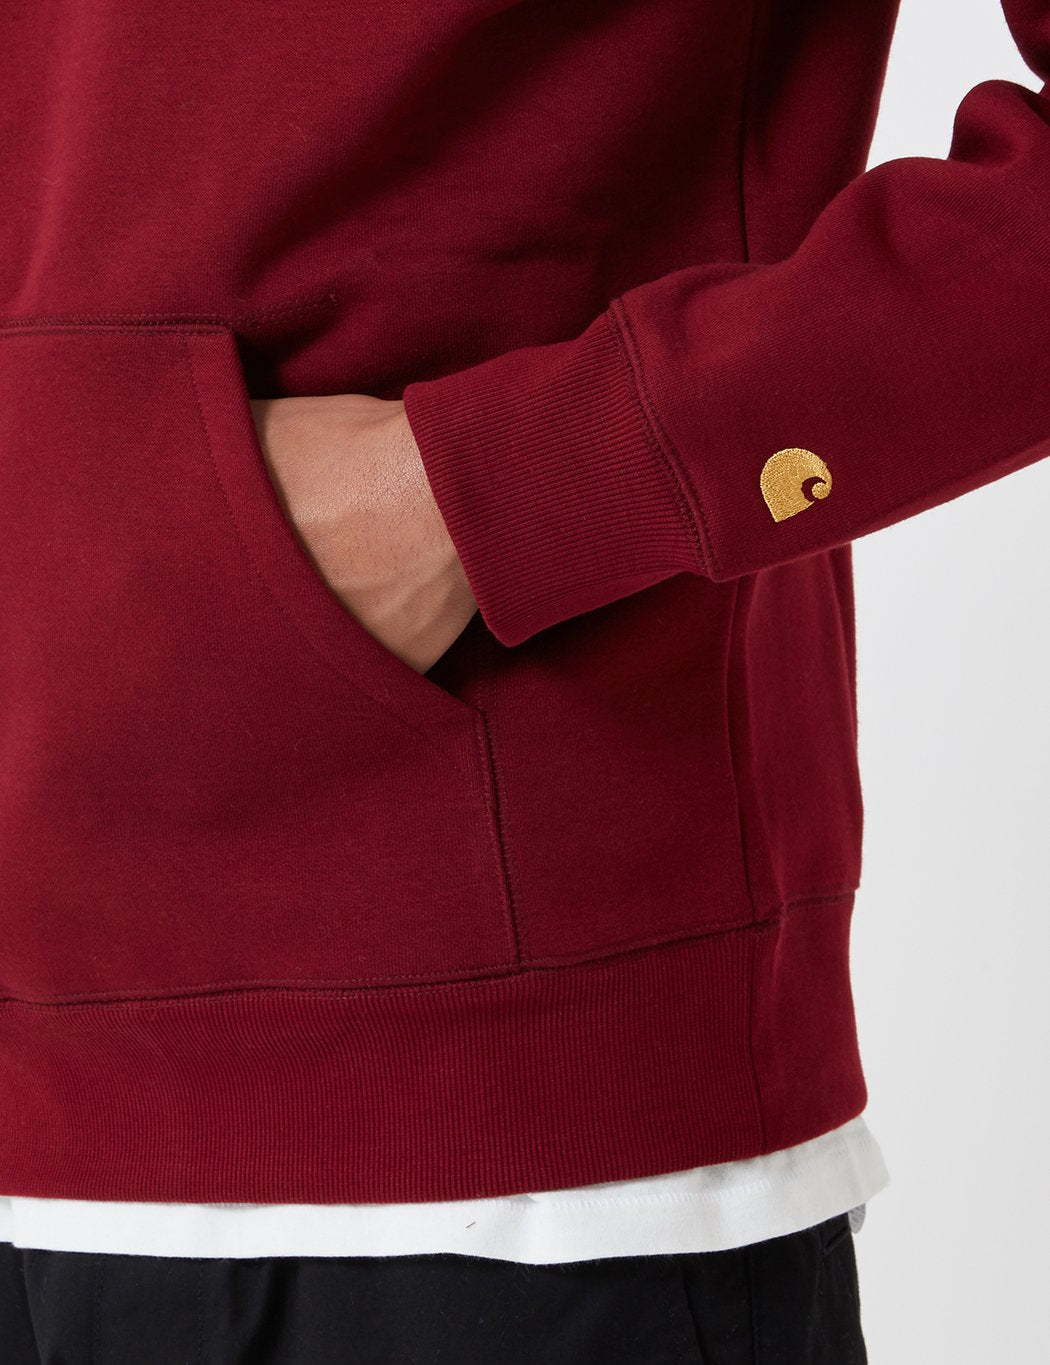 Carhartt-WIP Chase T-Shirt - Cranberry Red